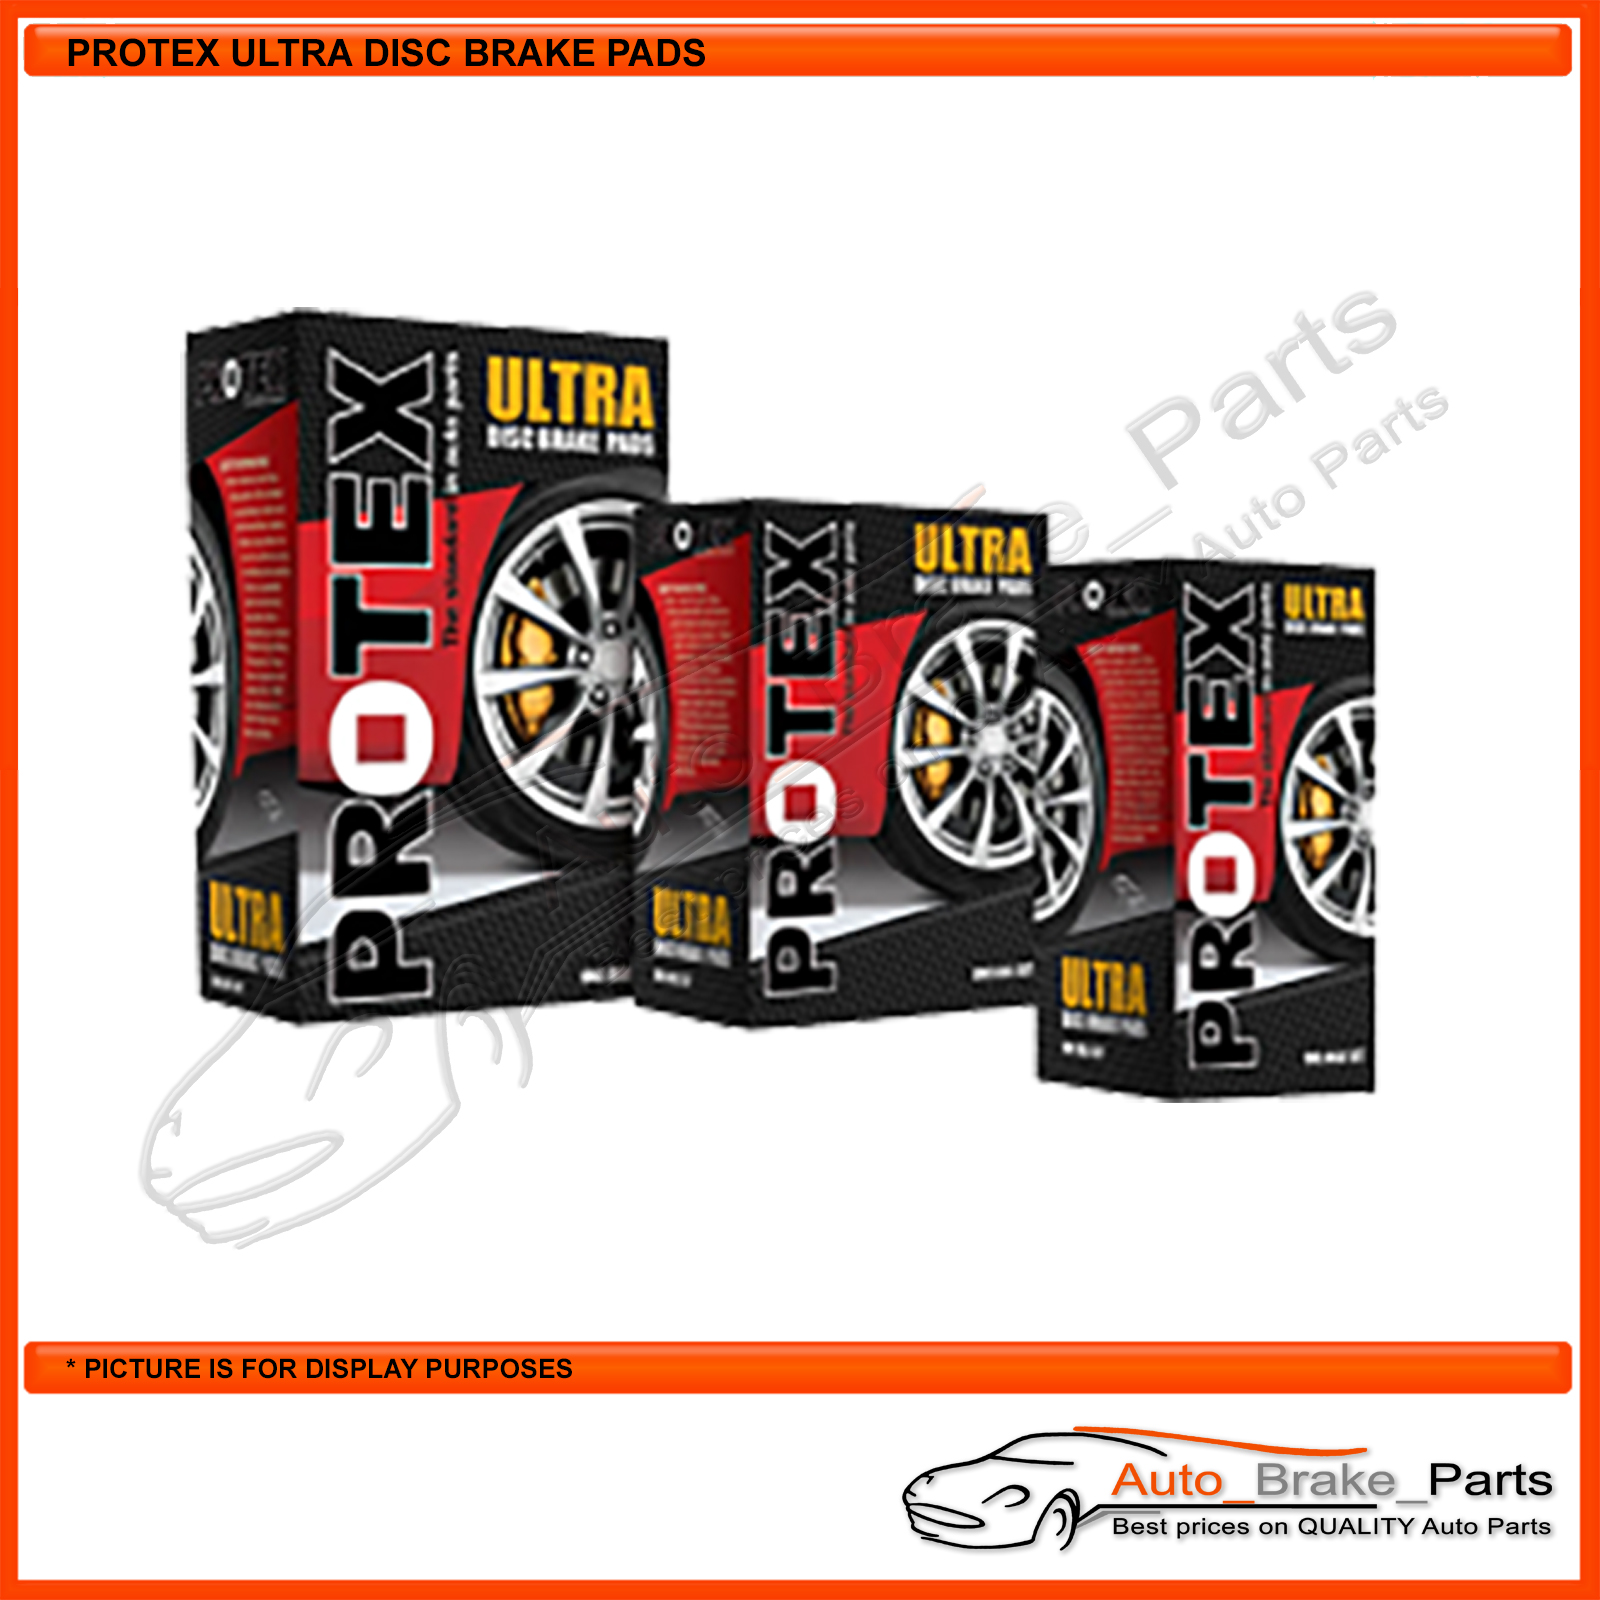 Auto Brake Parts Protex Ultra Rear Brake Pads For Audi A3 8p